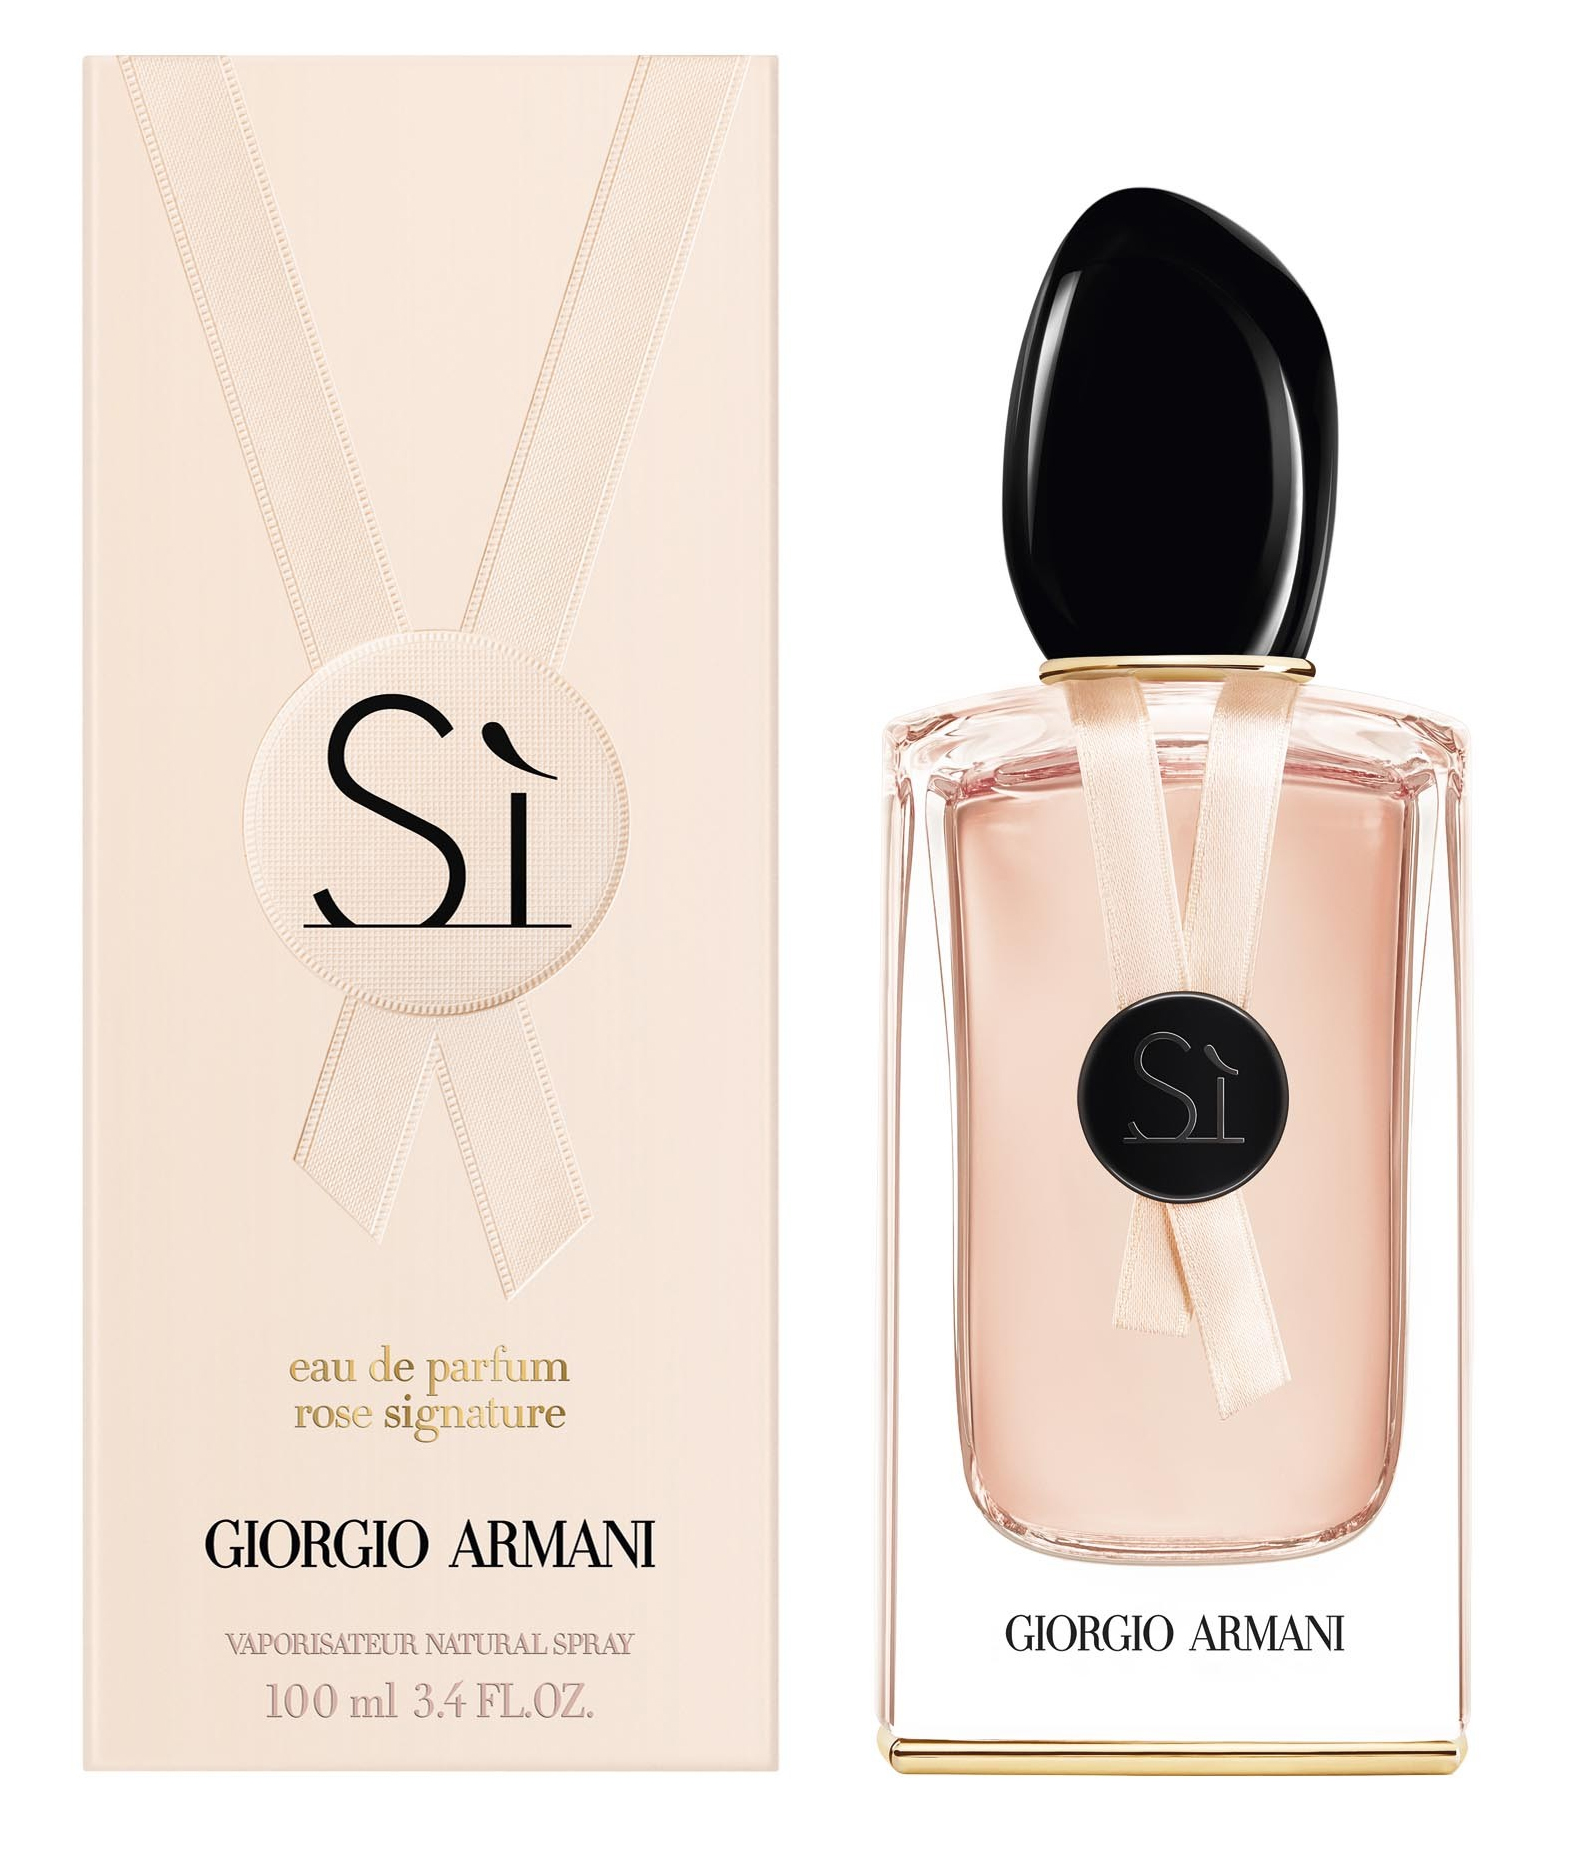 8f2ba7c1051 Si Rose Signature II Eau de Parfum Giorgio Armani for women Pictures ...